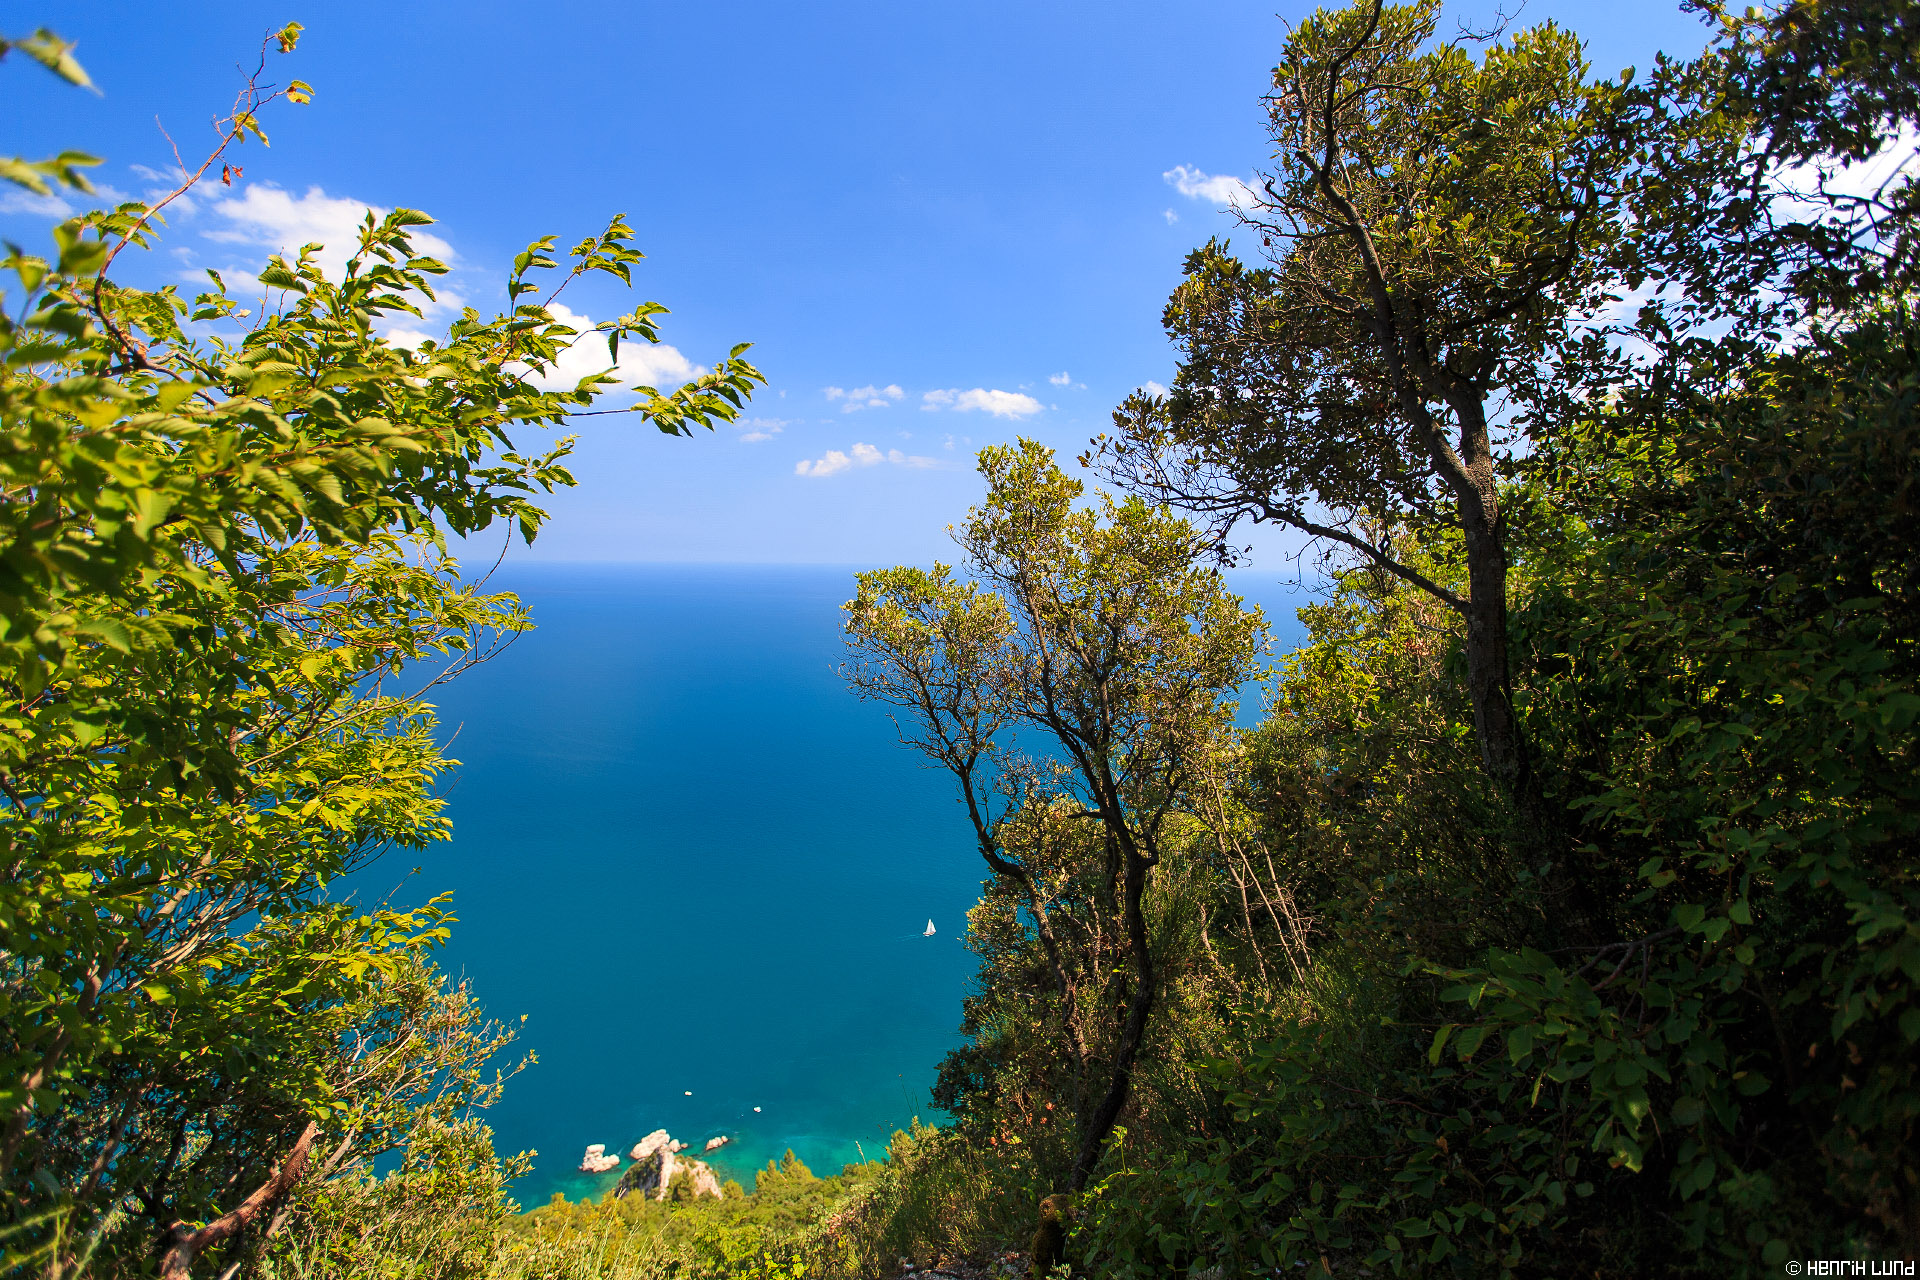 Seaview over the Adriatic Sea from 'Parco del Conero' in Marche, Italy. July 2015.